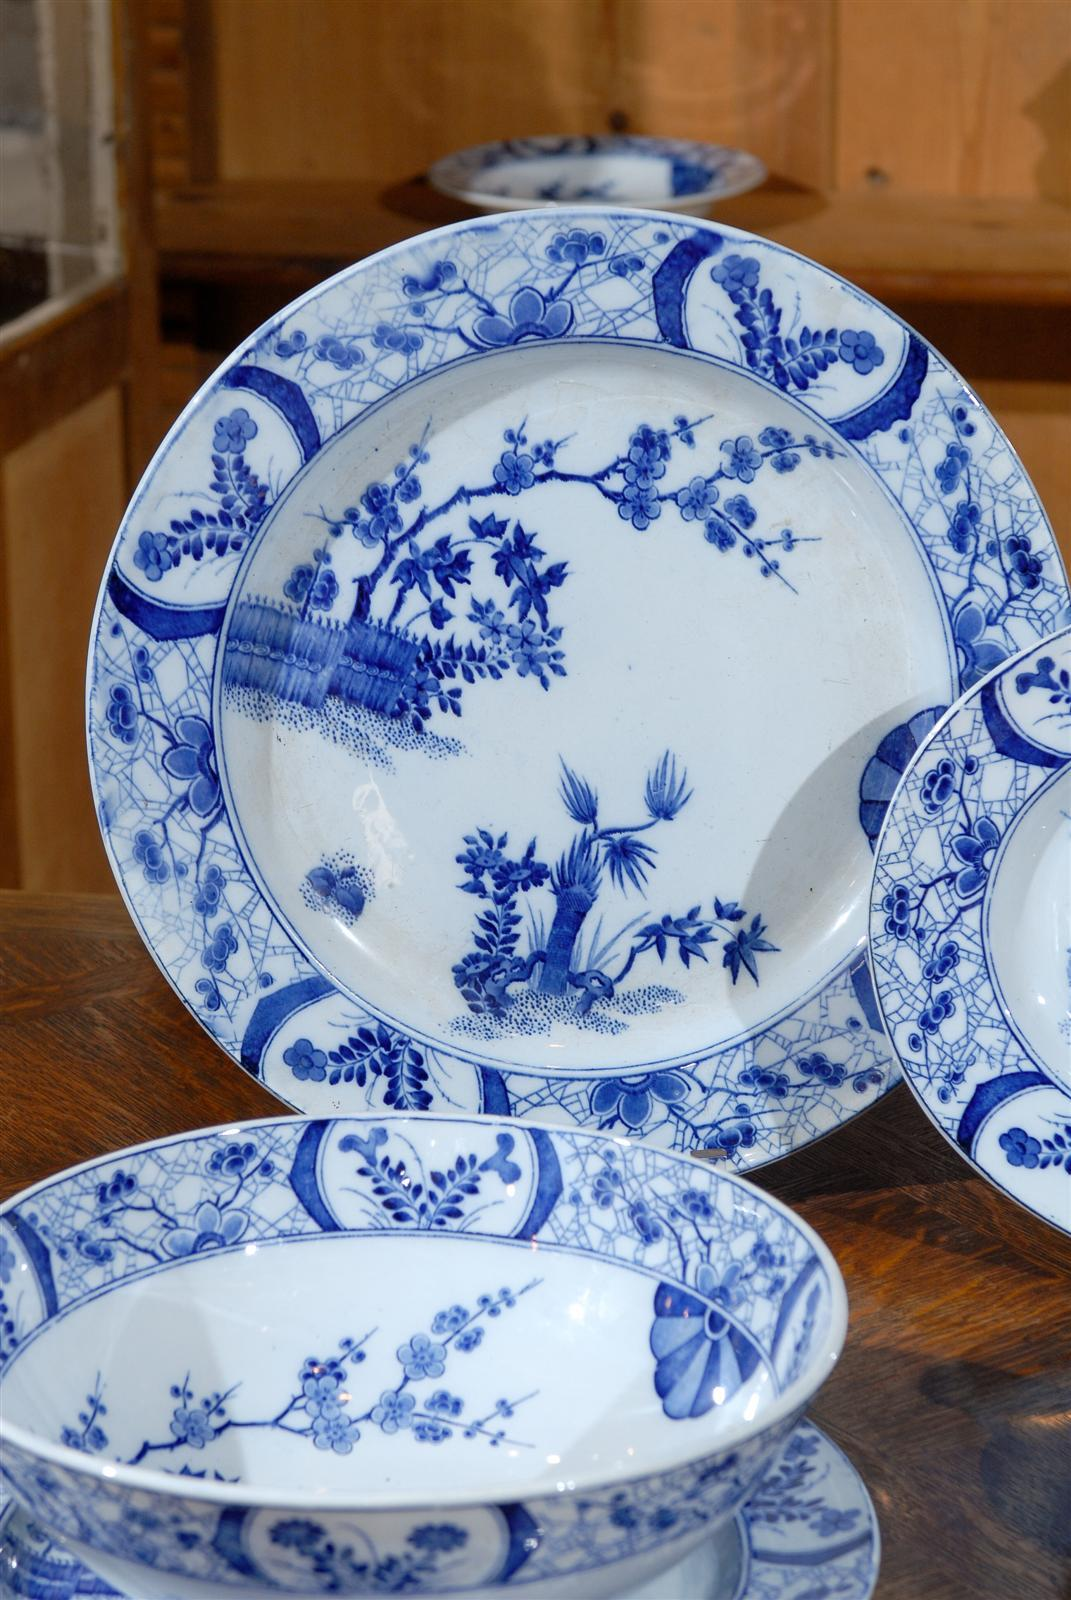 85-Piece Blue and White Japonisme Porcelain Dinnerware Designed by Claude Monet In Excellent Condition & 85-Piece Blue and White Japonisme Porcelain Dinnerware Designed by ...